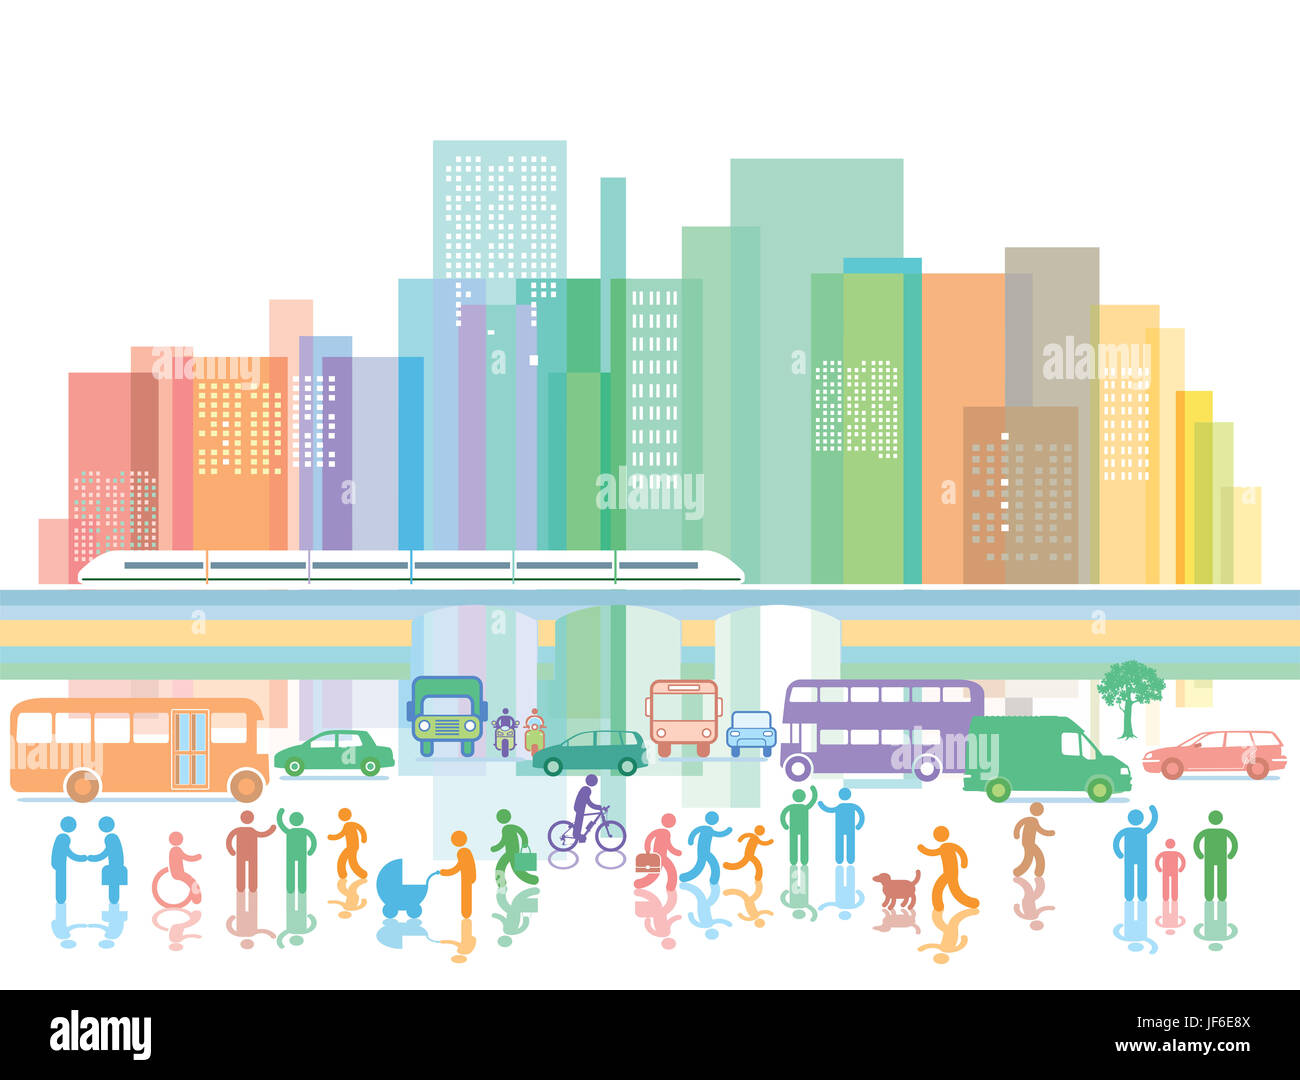 Large city with people and road traffic - Stock Image